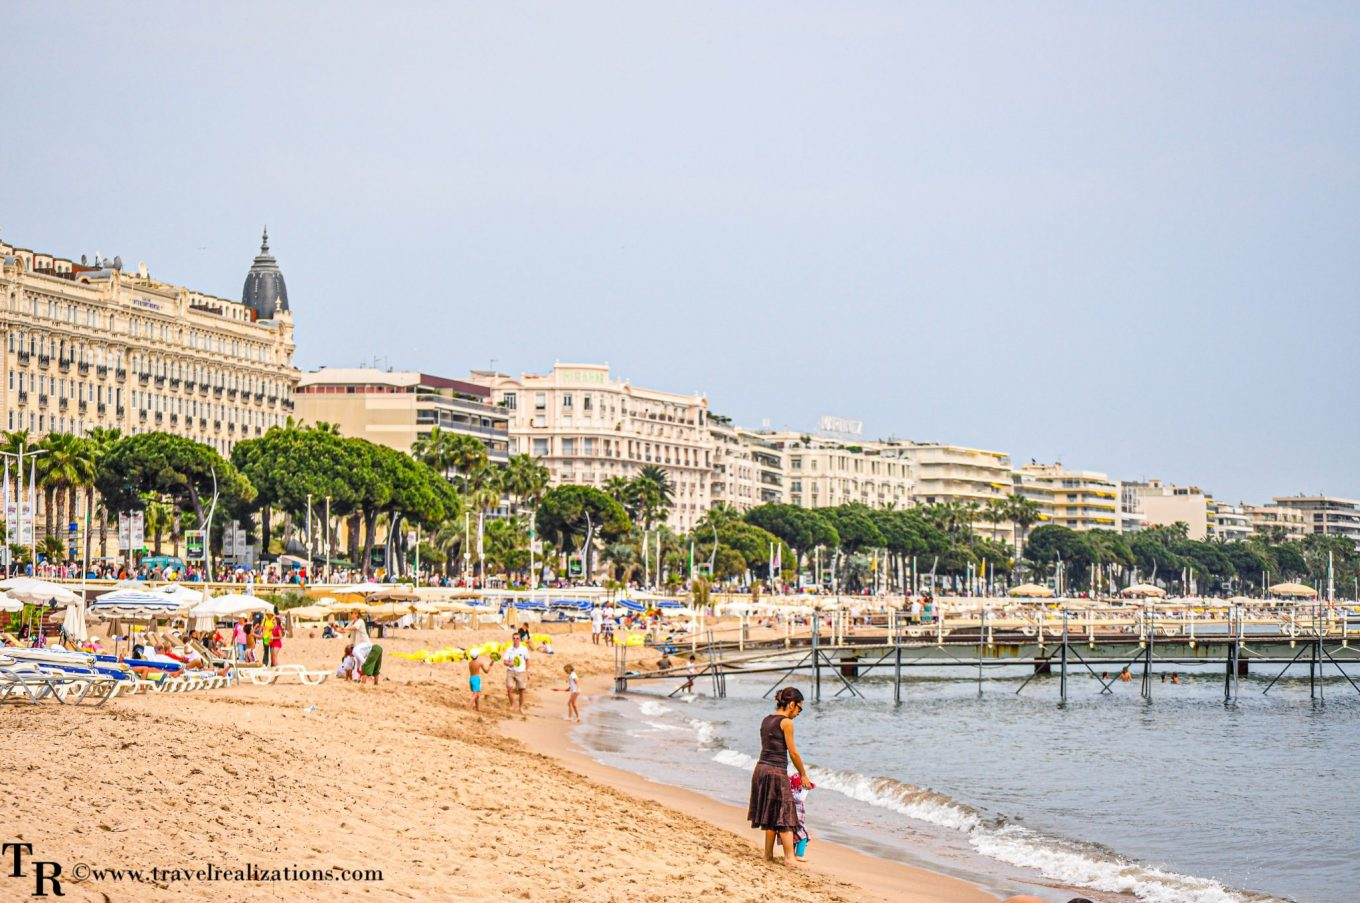 Cannes - A city in the French Riviera that rolls out the red carpet to glitz and glamour every year